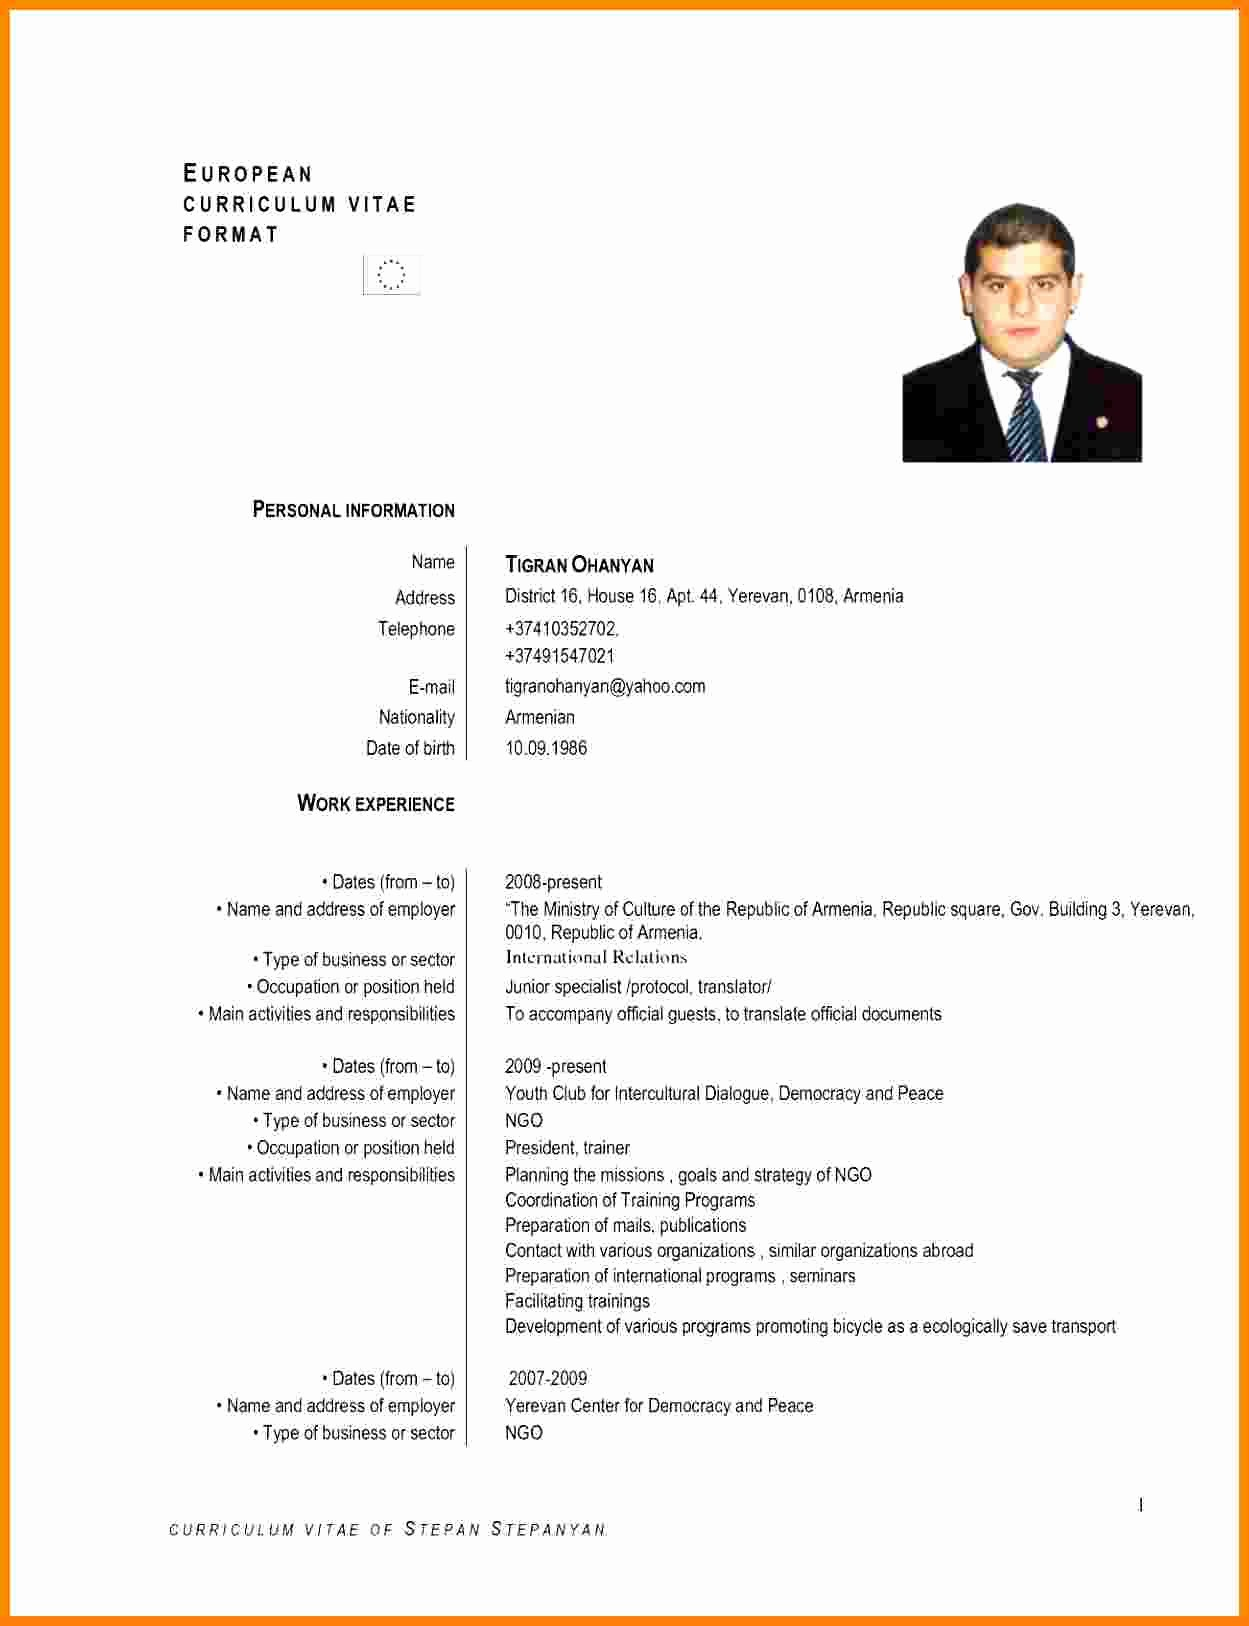 Resume Models In Word format Fresh 5 Curriculum Vitae European format Word